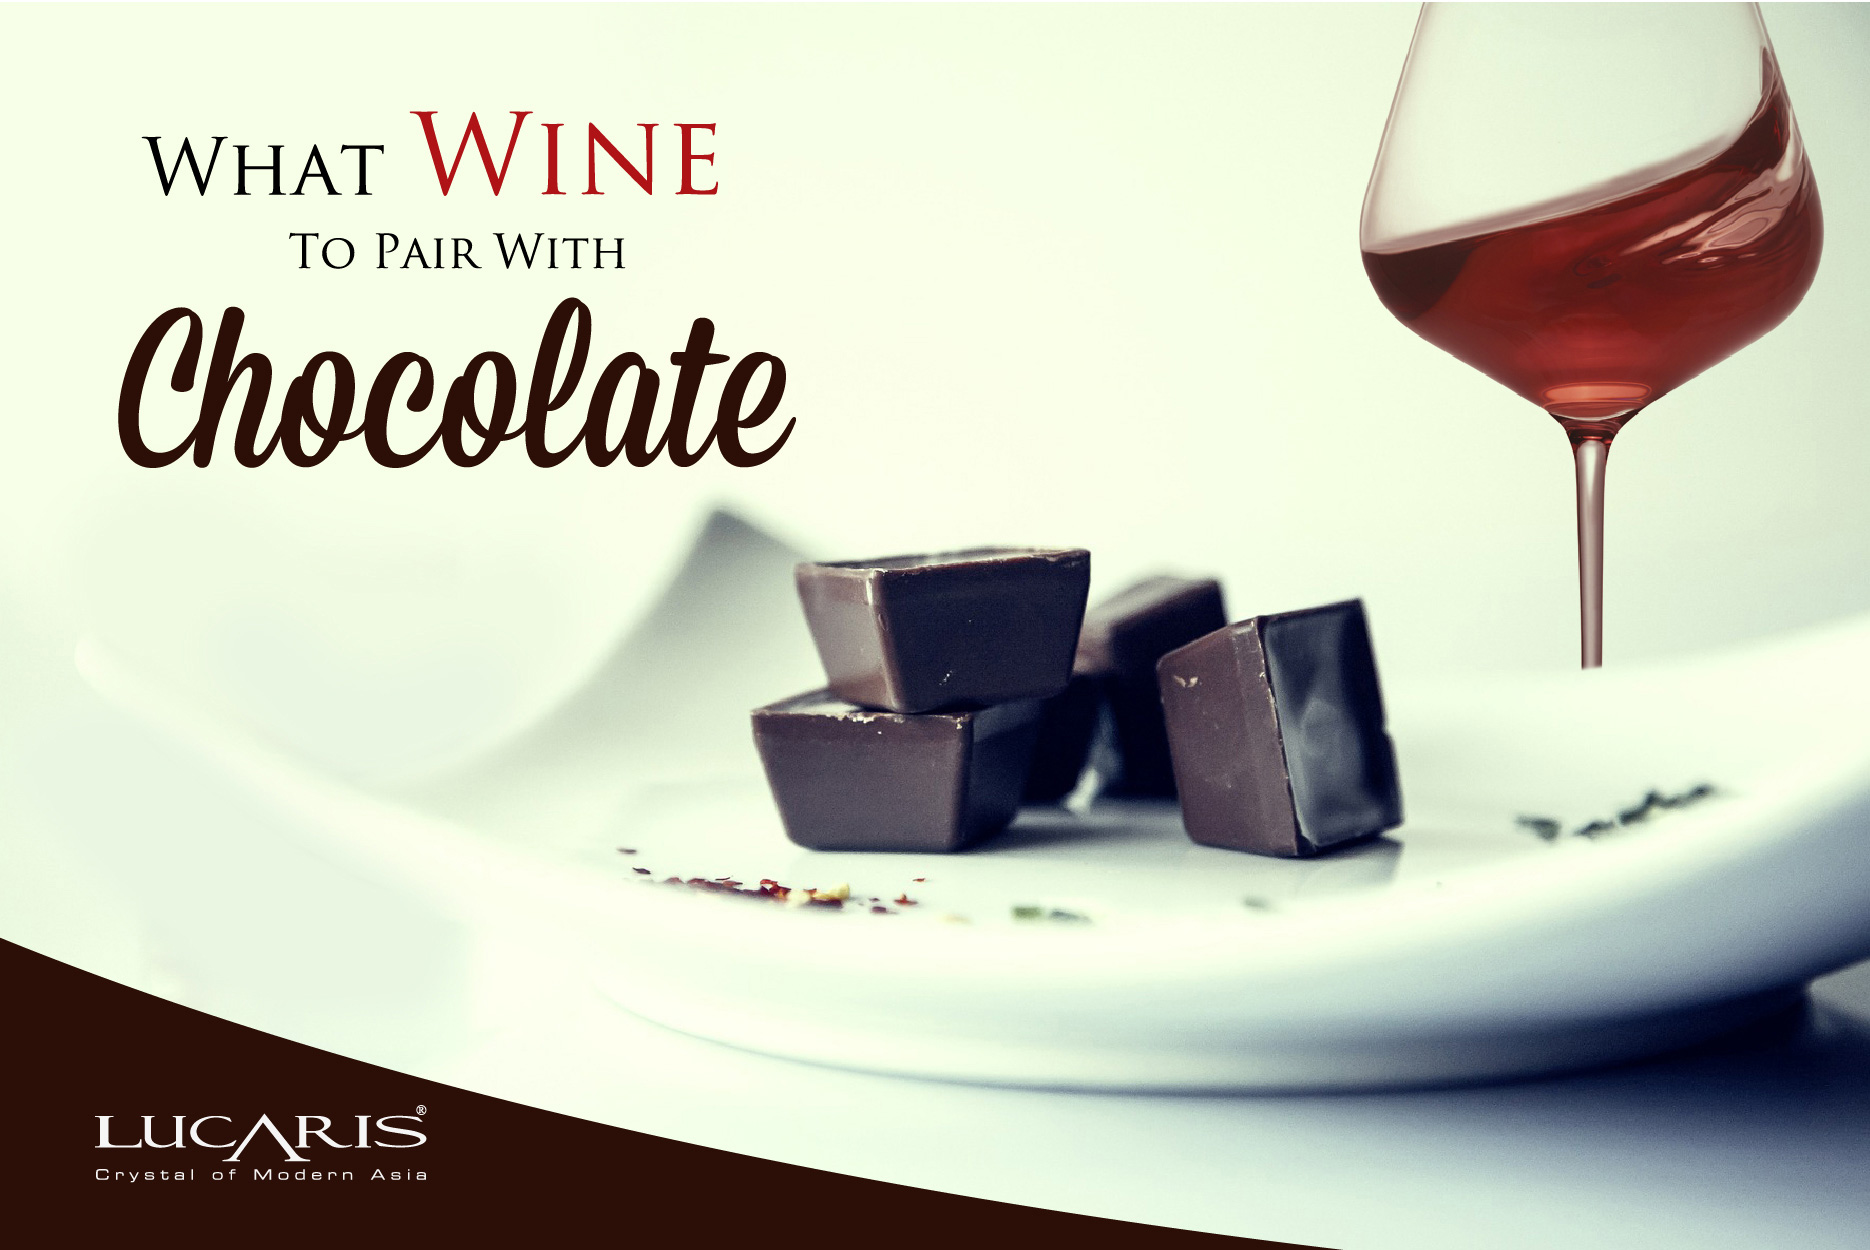 What Wine to Pair with Chocolate?